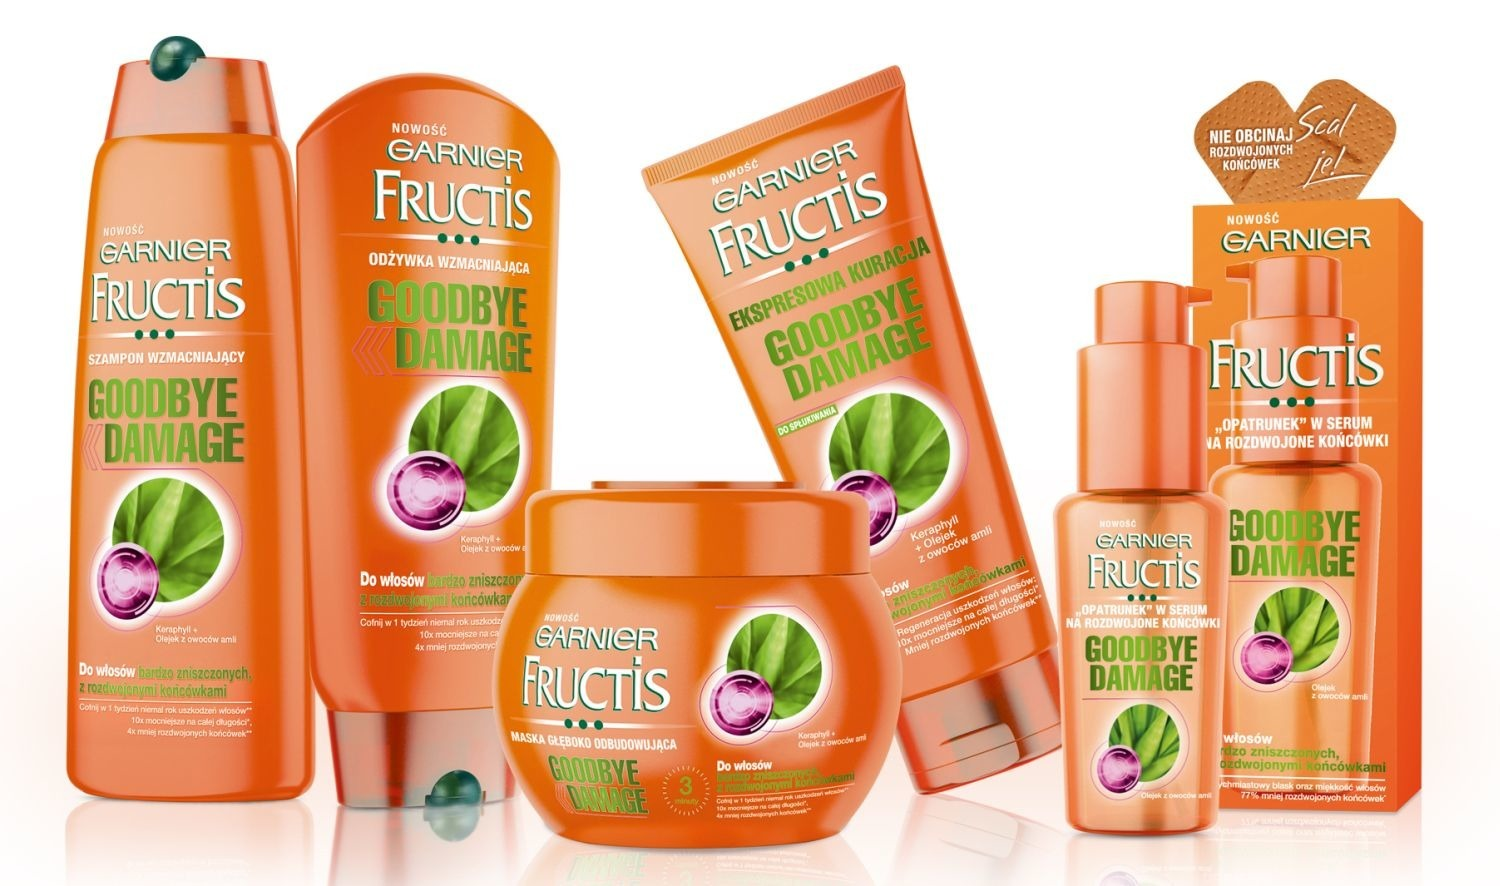 Fructis Goodbye Damage